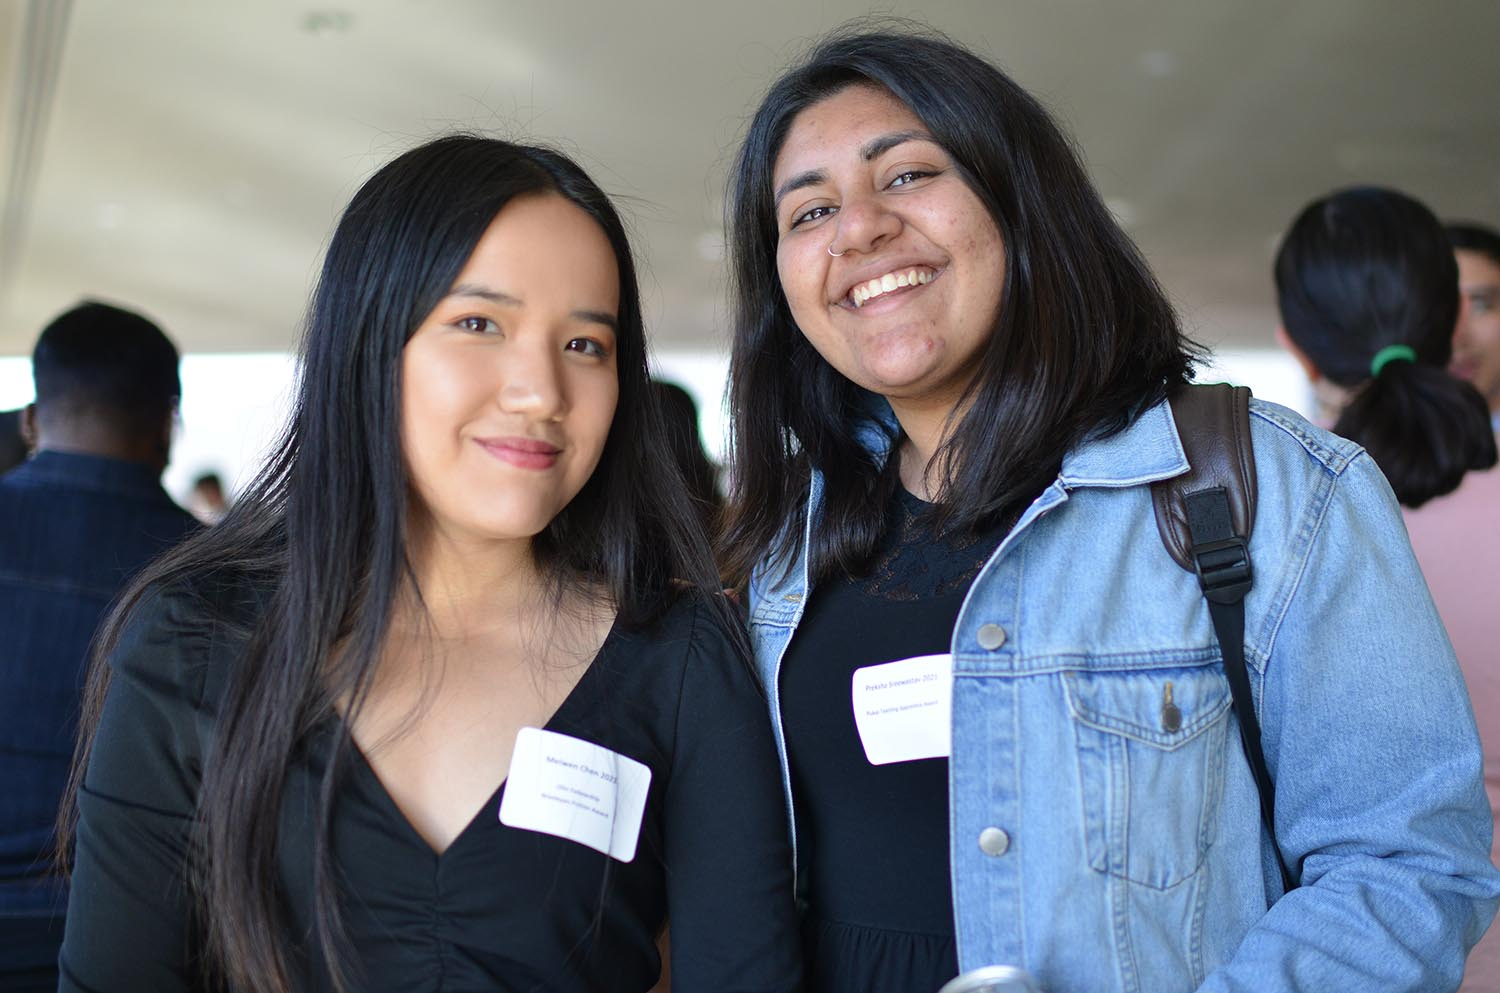 Meiwen Chen '21 won a Wesleyan Fiction Award and an Olin Fellowship. Preksha Sreewastav '21 received a Plukas Teaching Apprentice Award for excellent service to the Economics Department as a teaching apprentice.